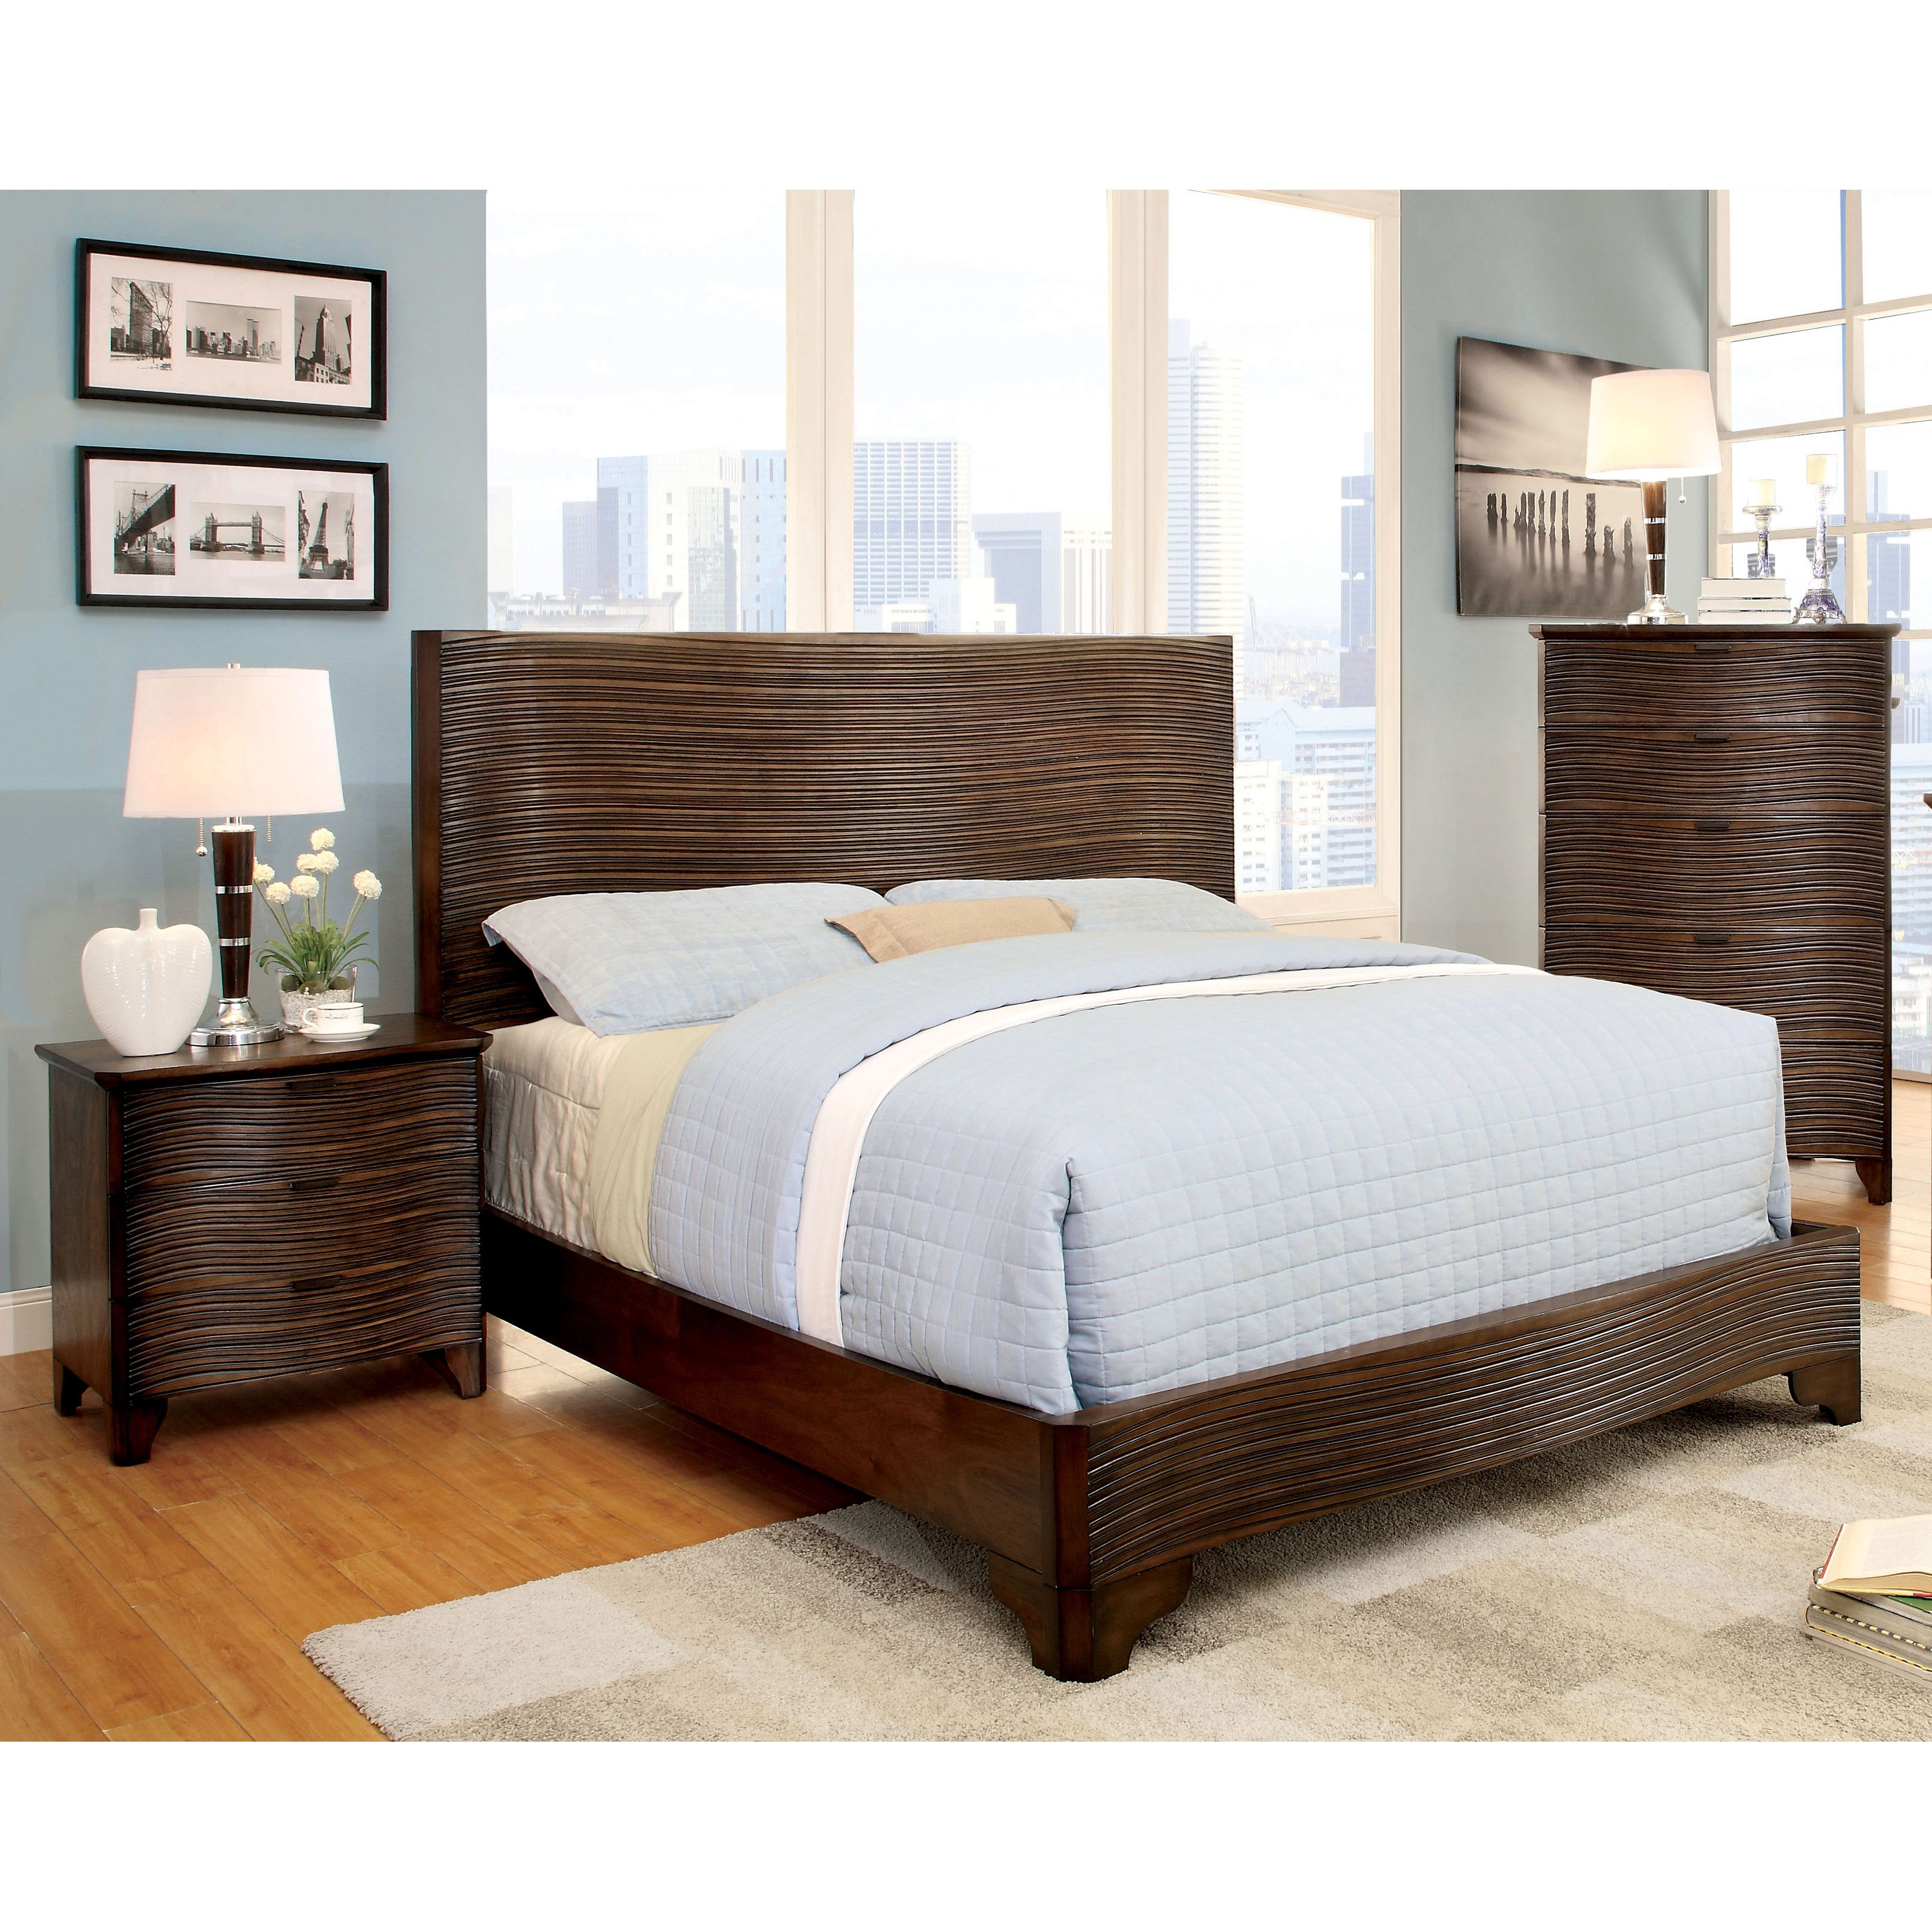 Furniture of america titanean piece textured rustic bedroom set by